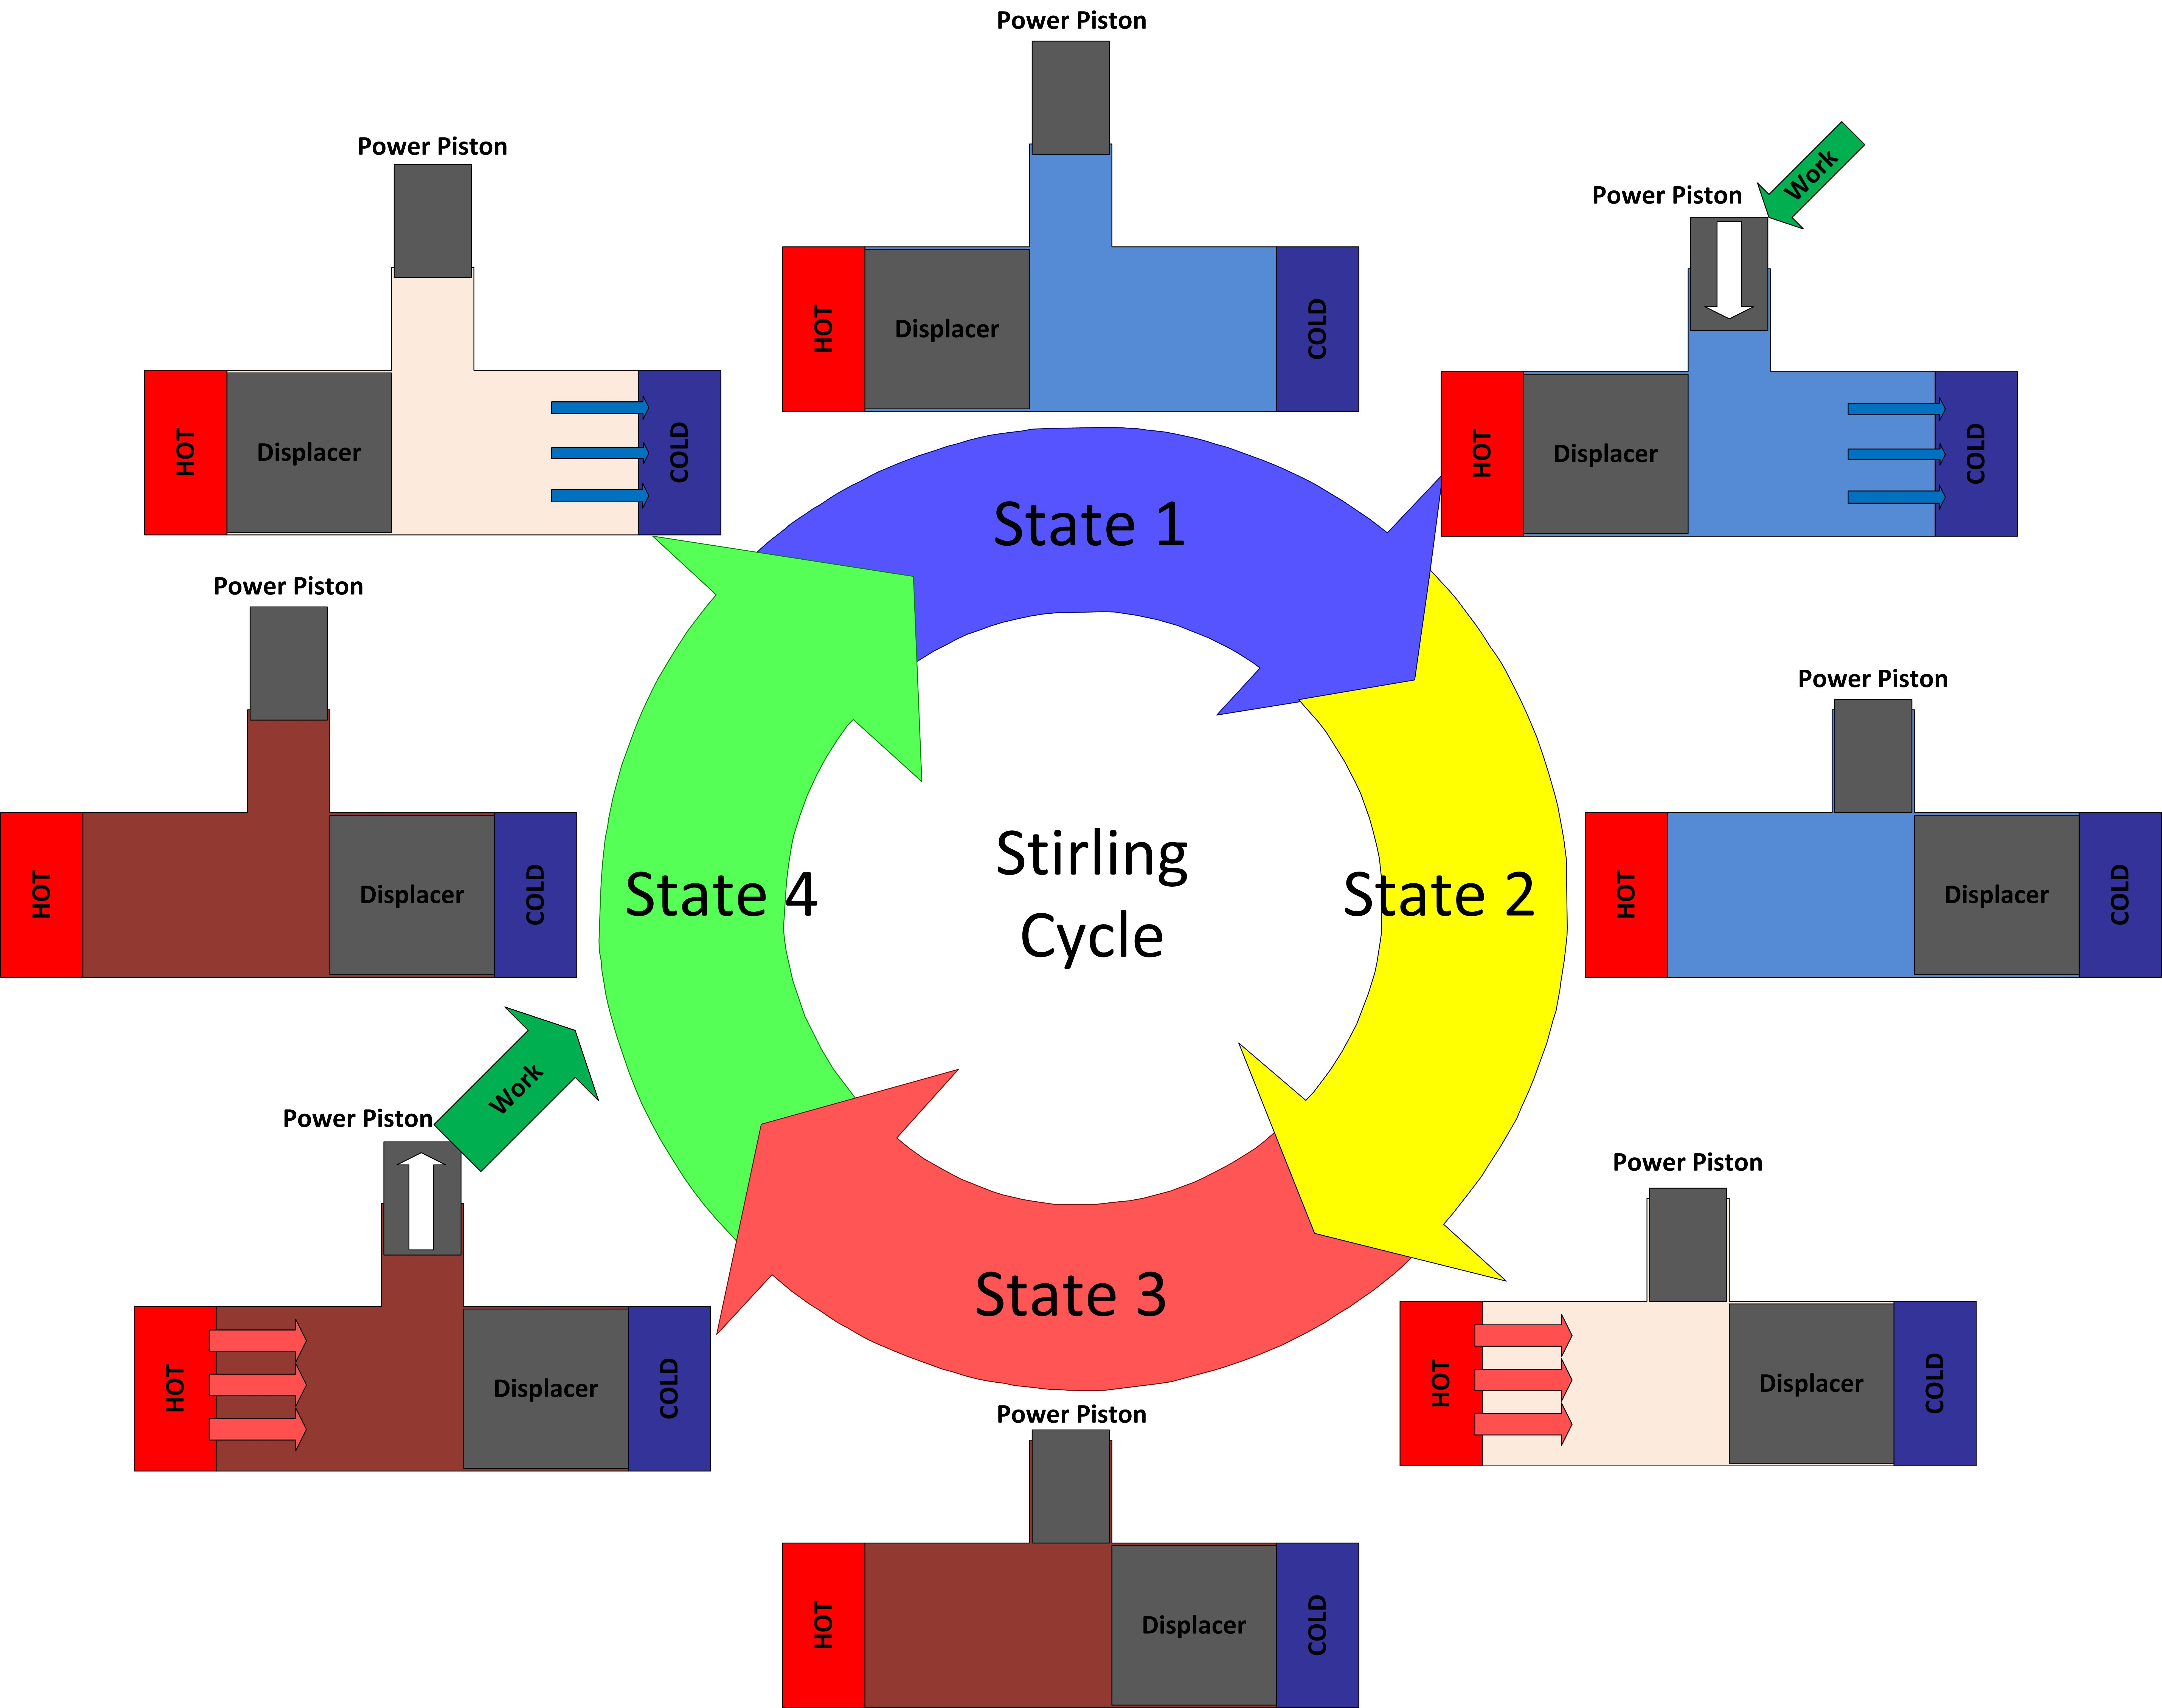 Diagram of the Stirling cycle showing the transistions between the four states